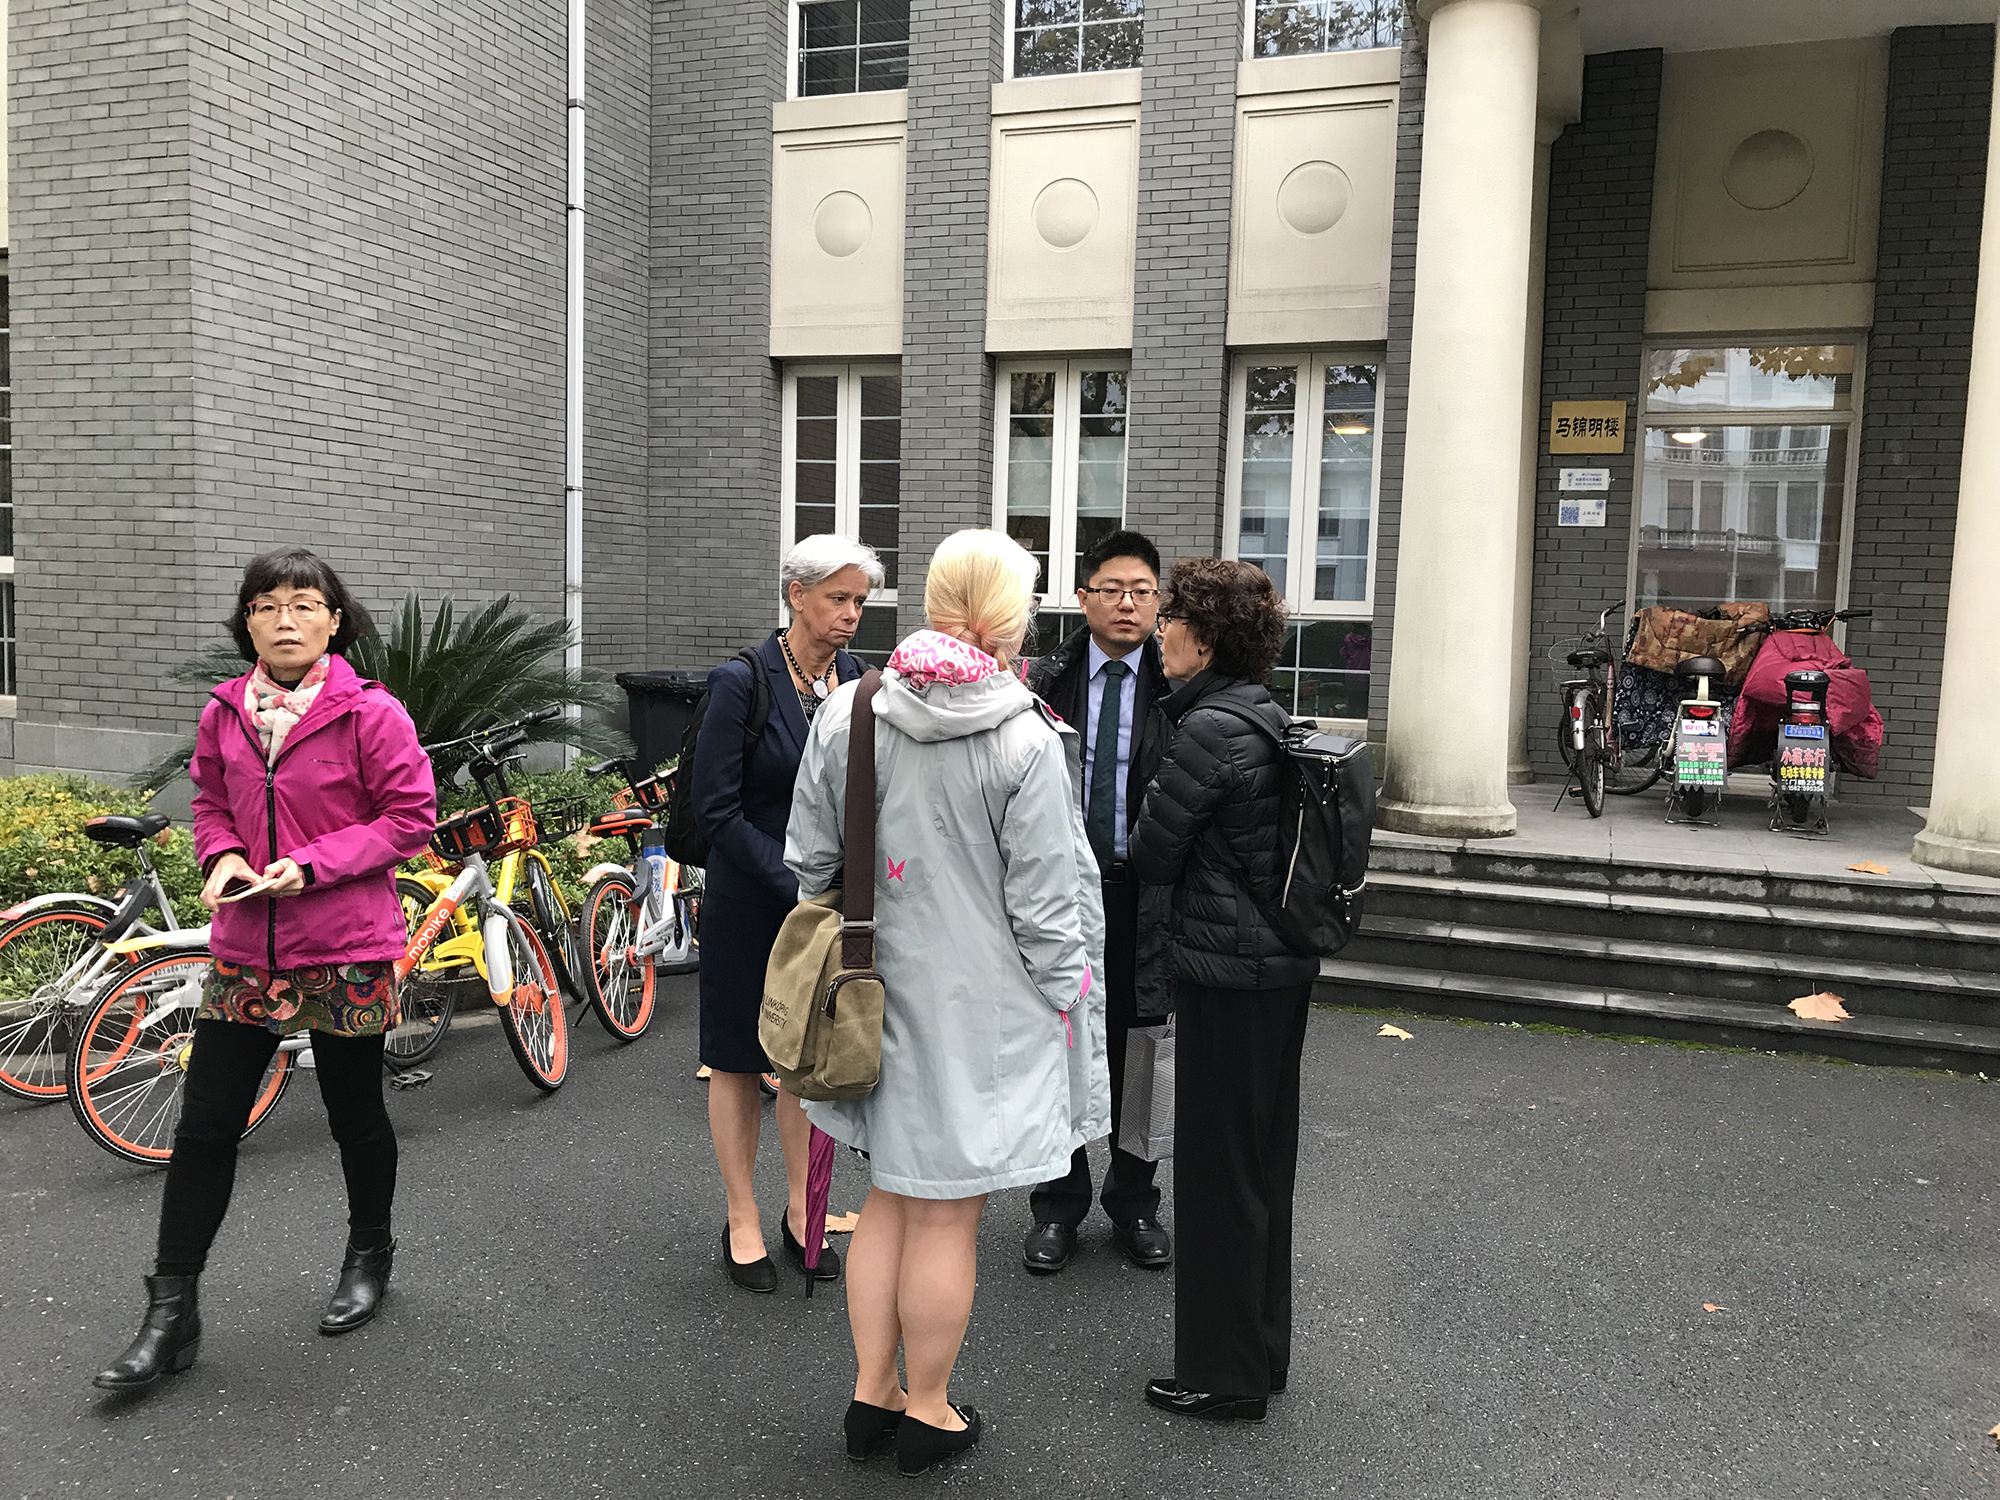 LiU delegation outside Nordic Centre